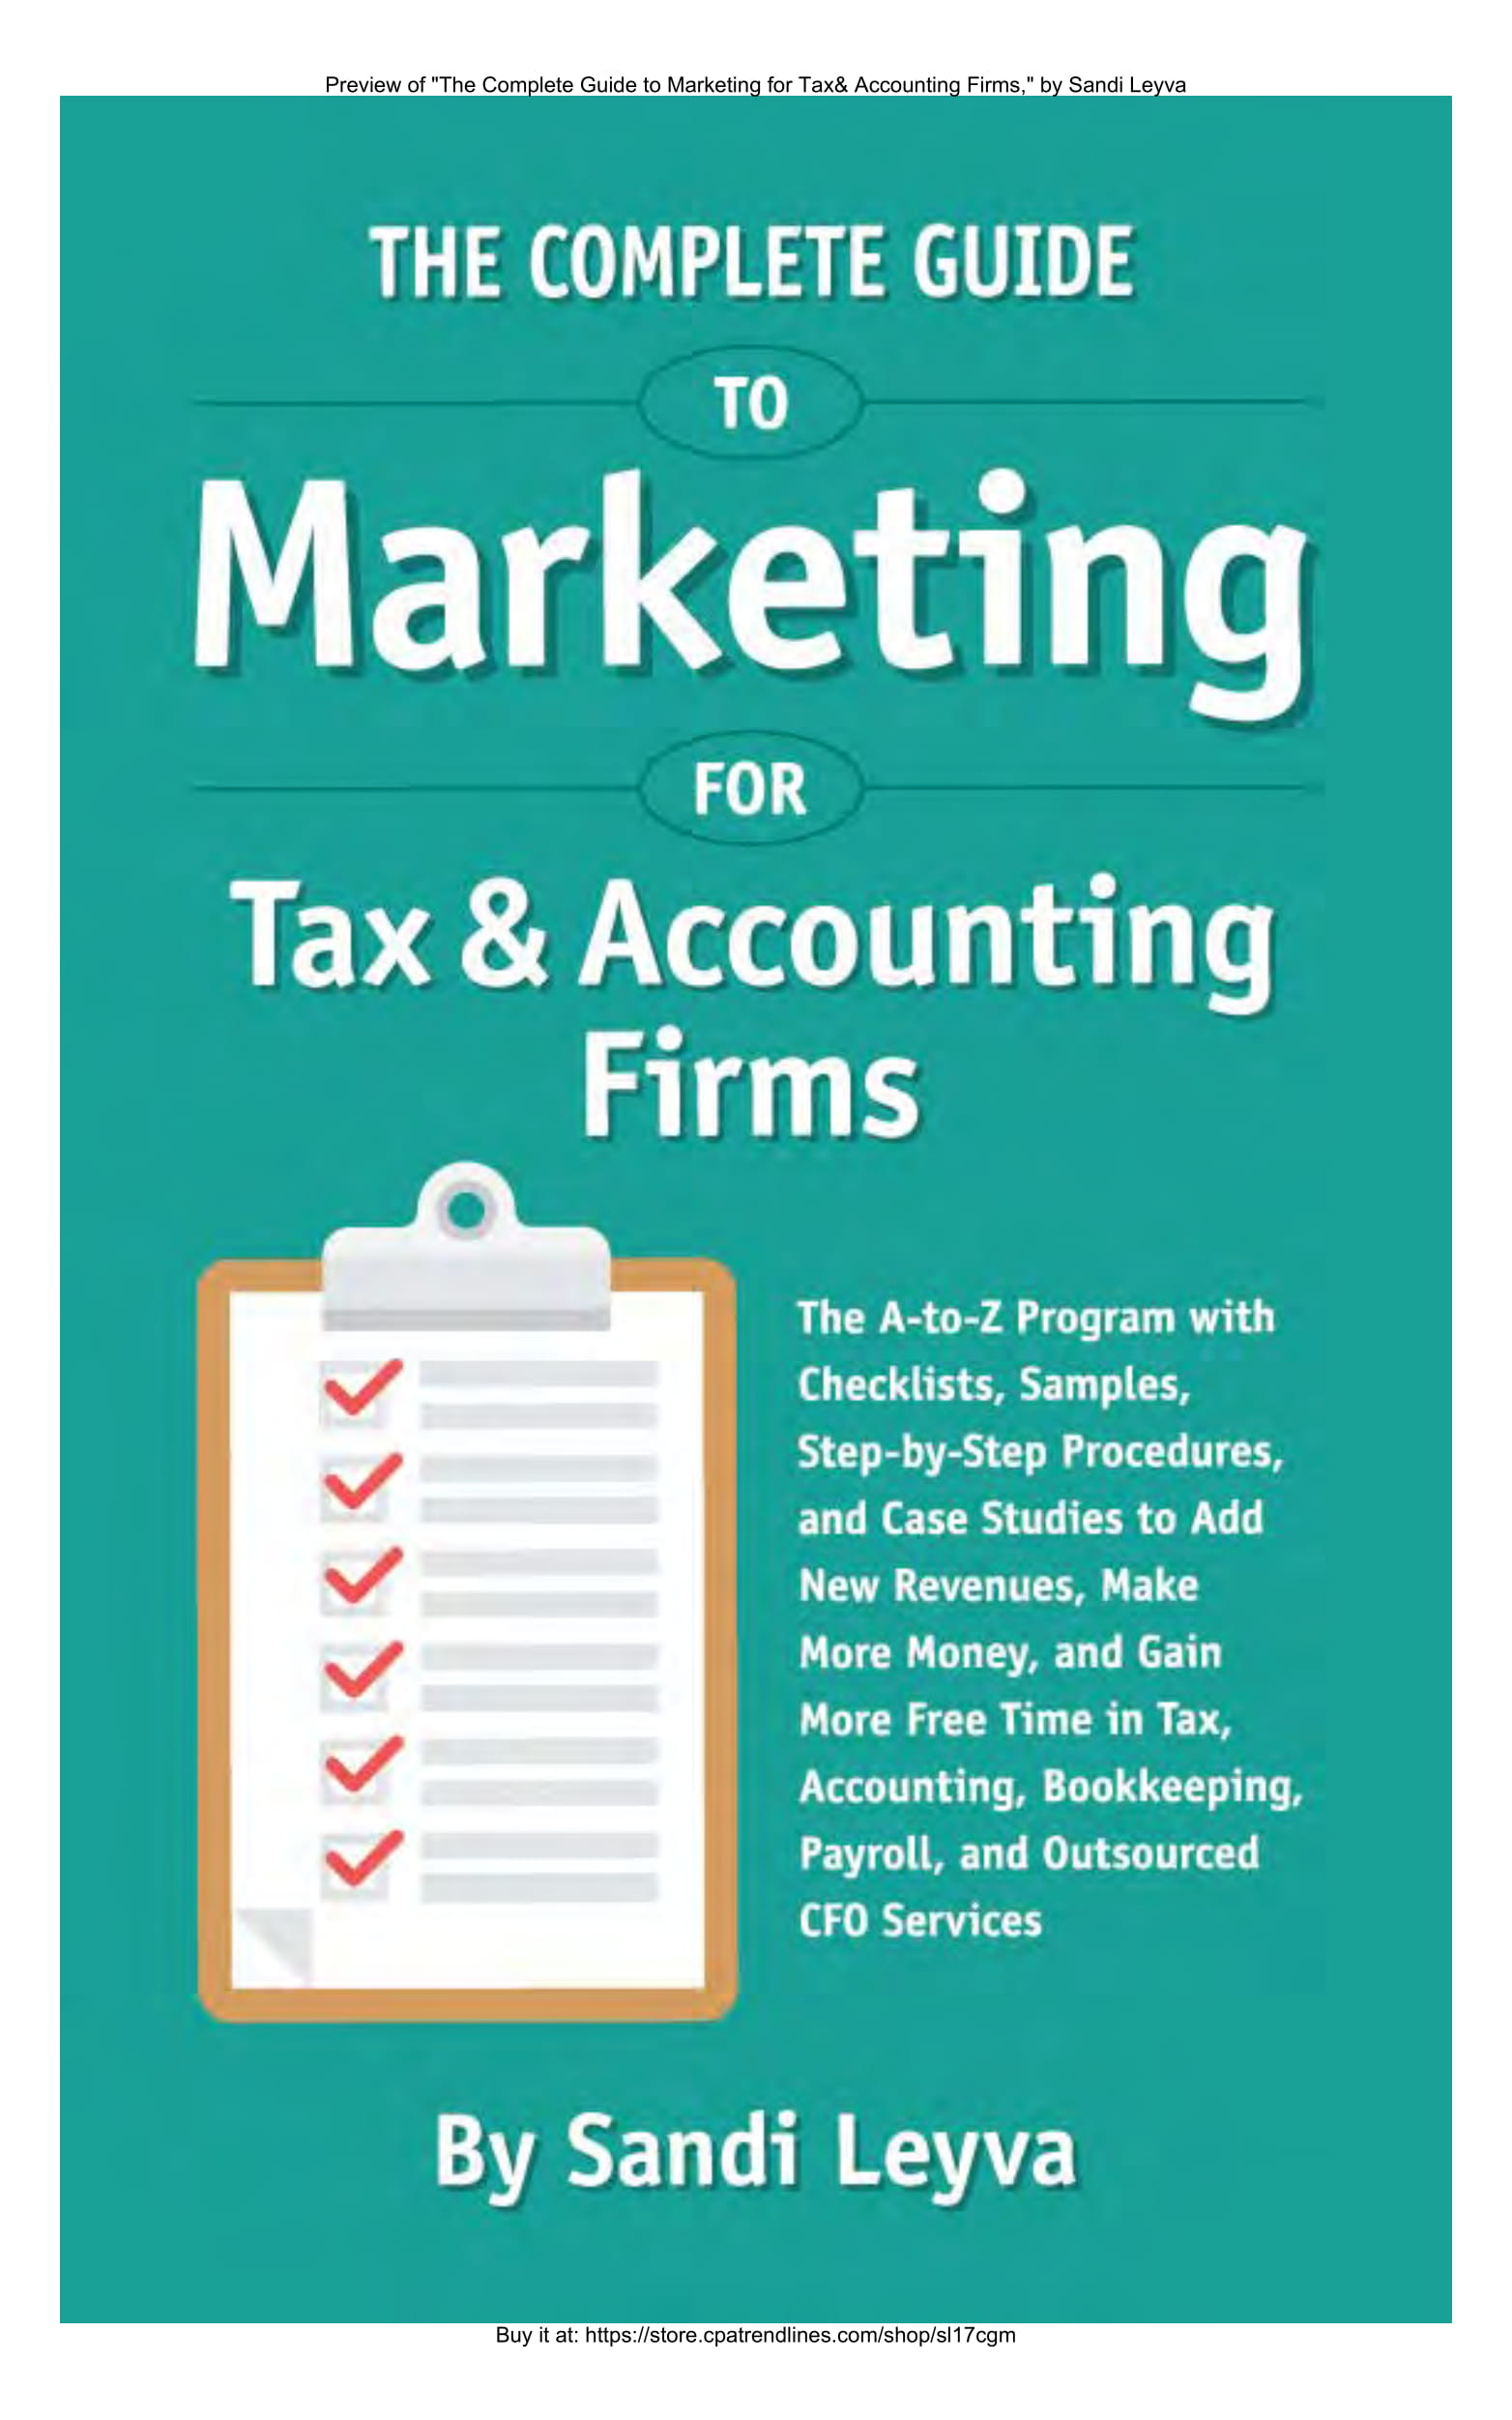 tax and accounting firm marketing plan guide example 01